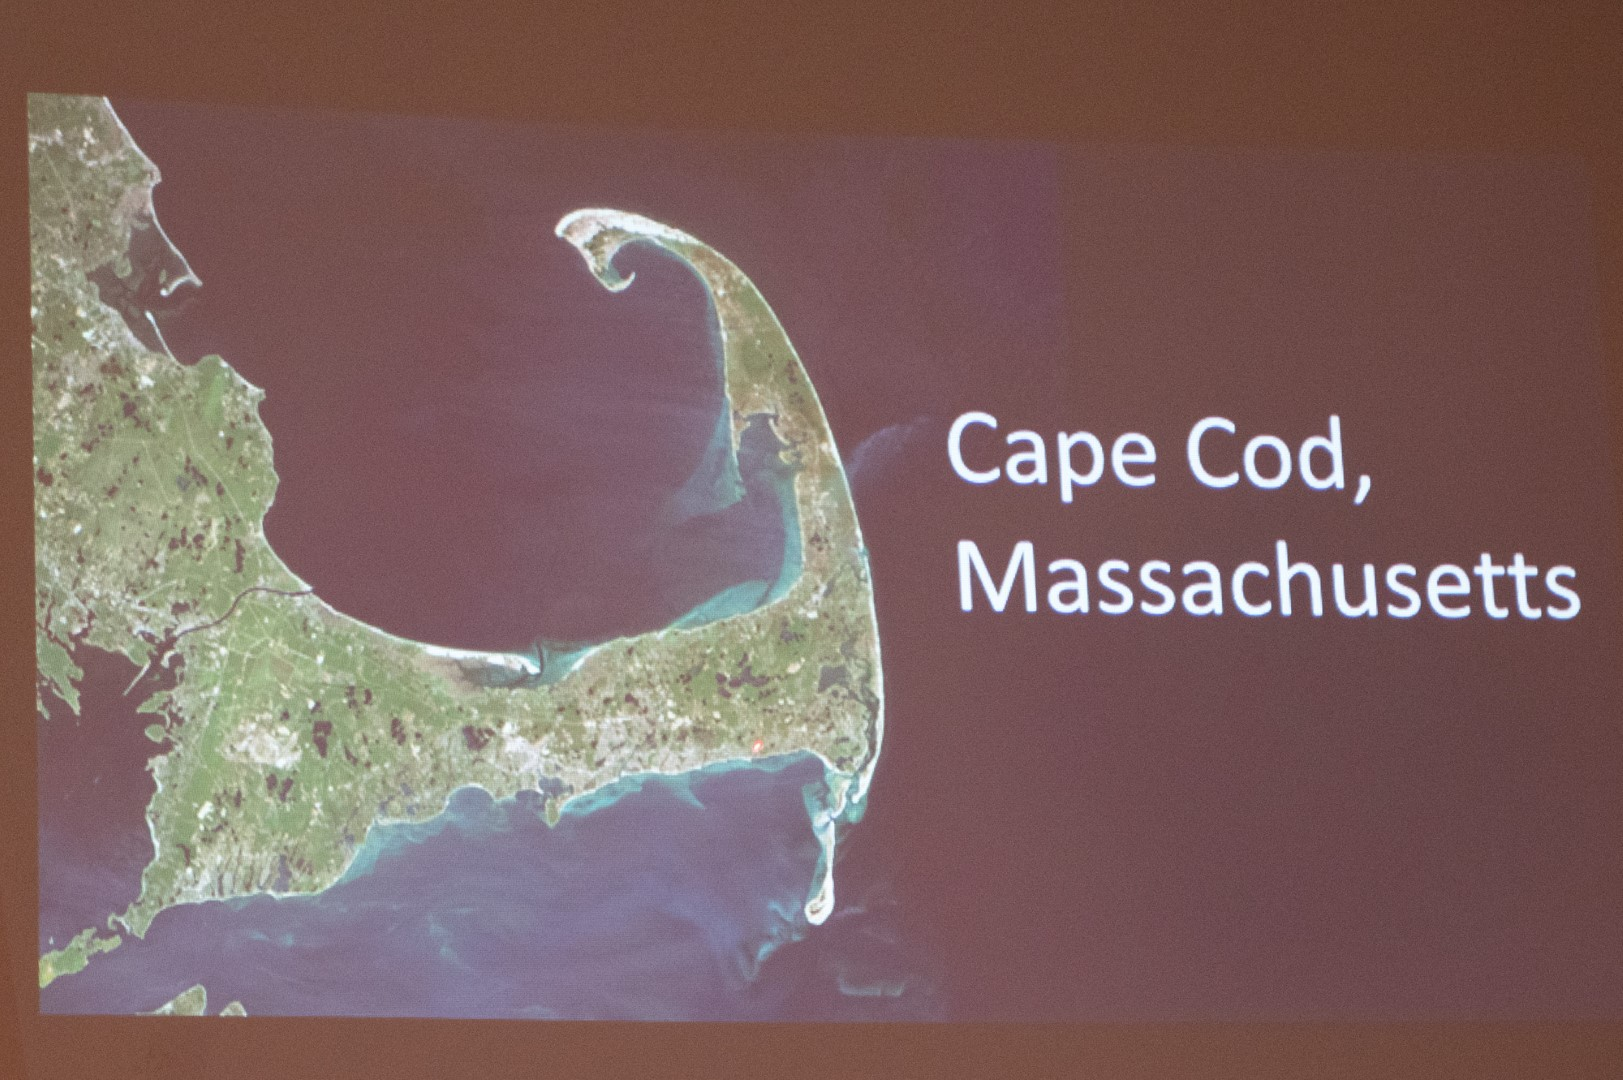 Terri talked to members about the five years she spent living on Cape Cod.